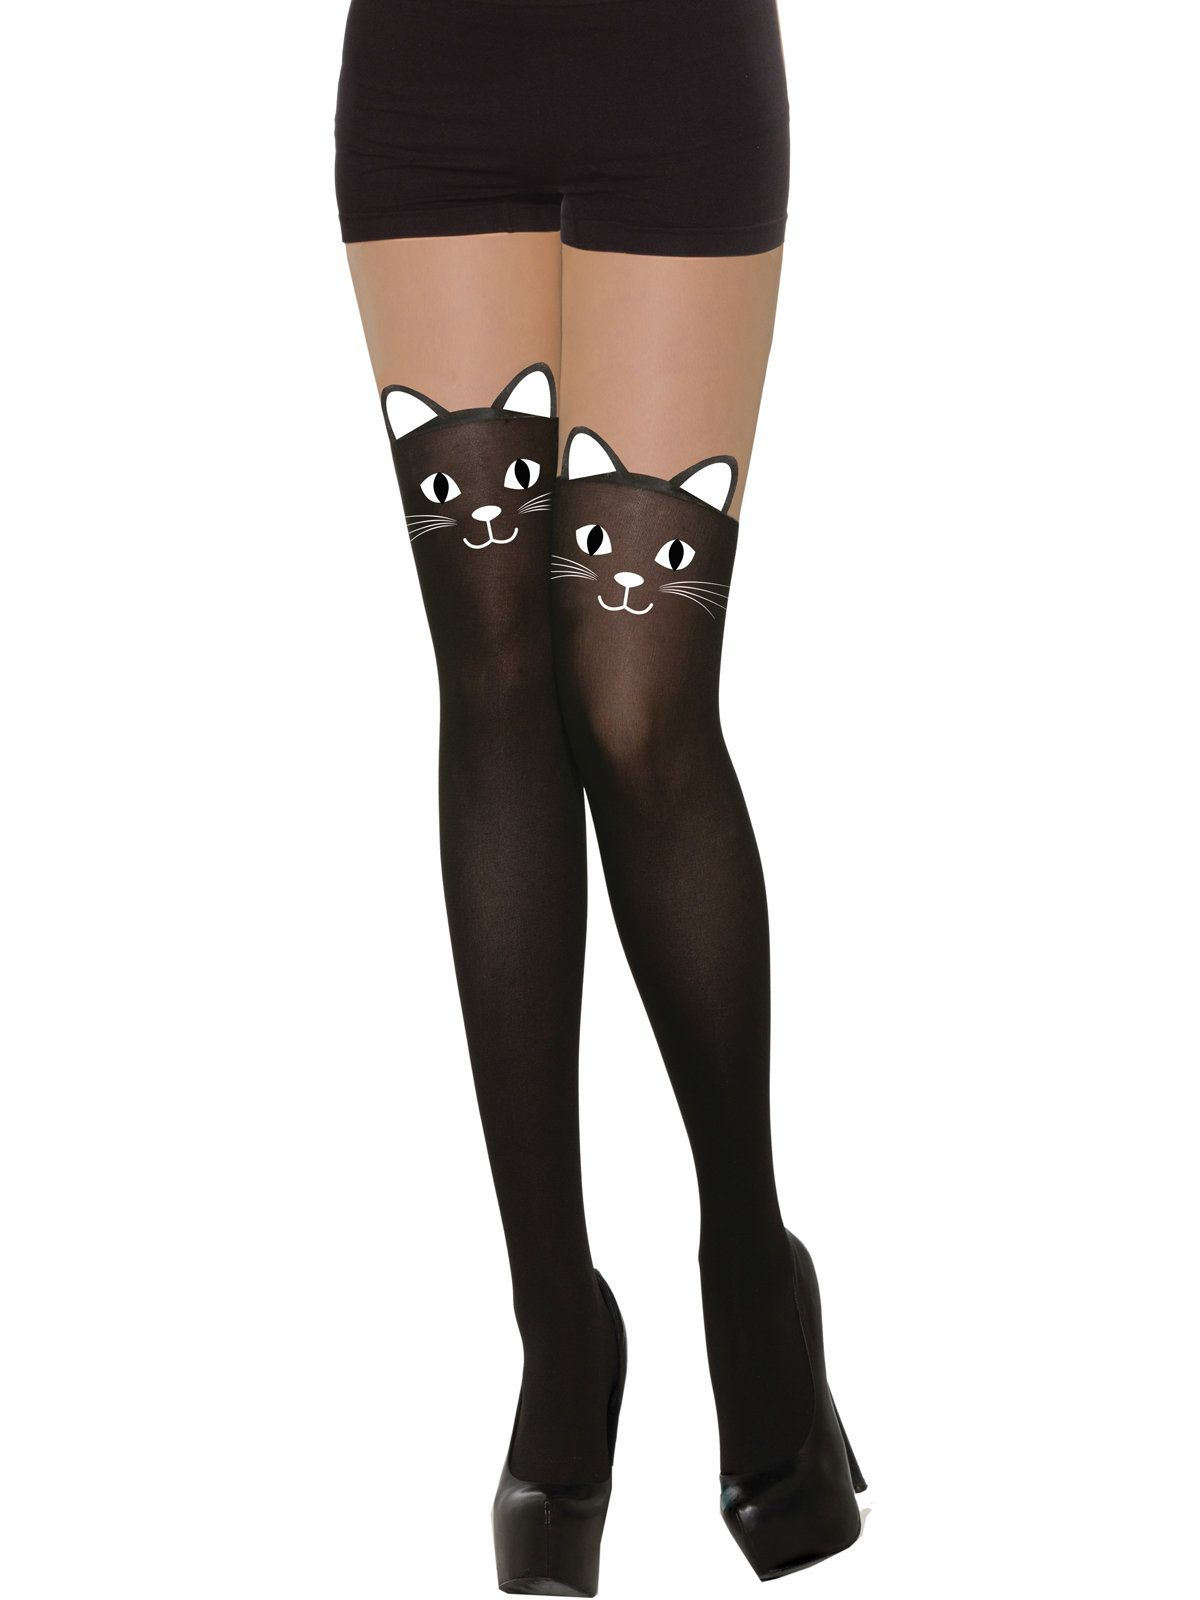 95f17e47f Black Cat Stockings - Adult - Costume Accessories for 2018 ...